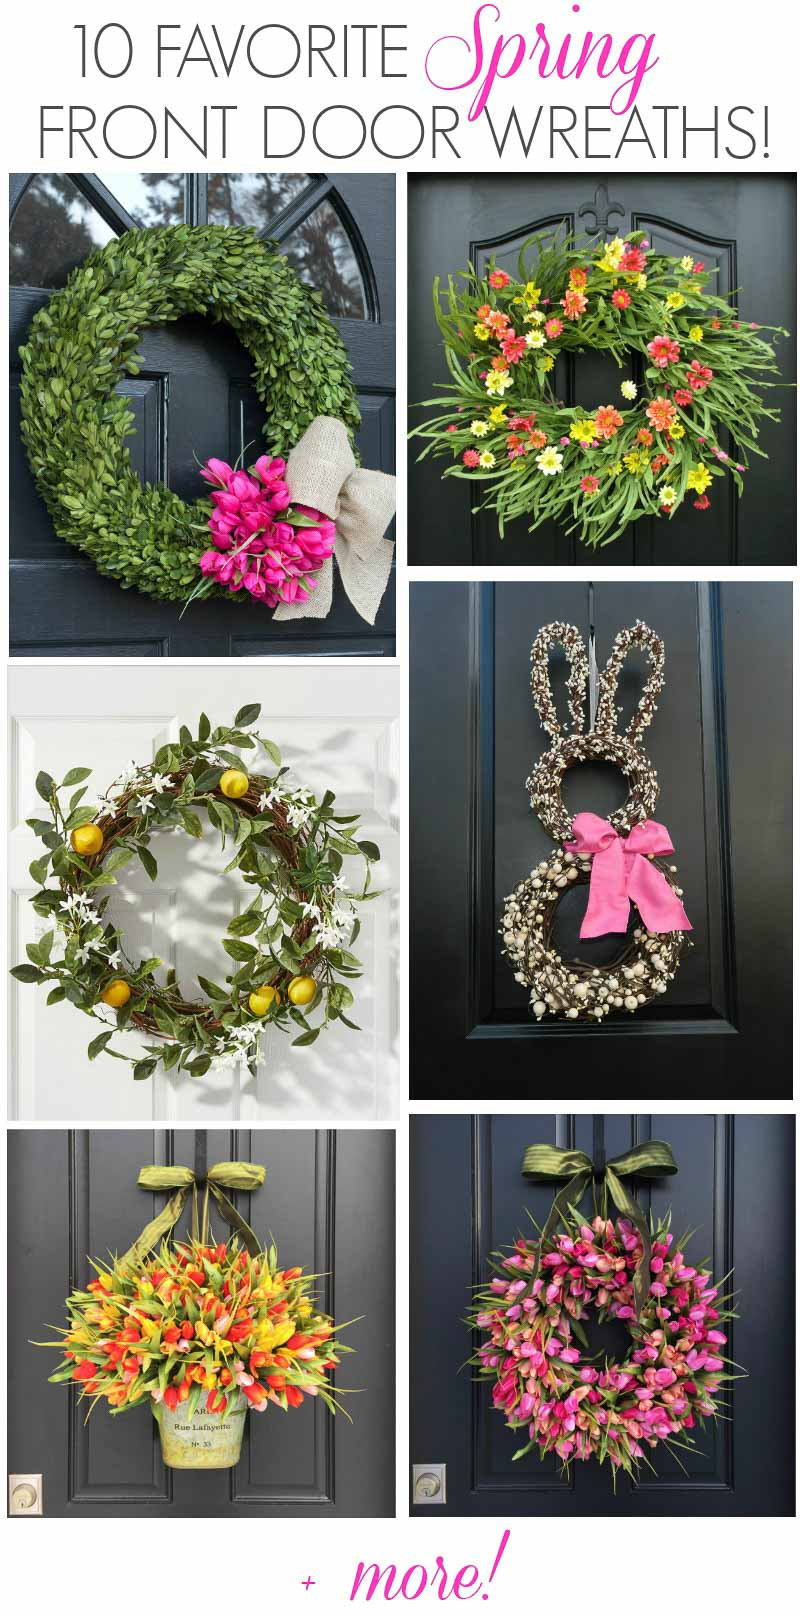 Gorgeous spring wreath ideas for your front door! My favorite is number 10!